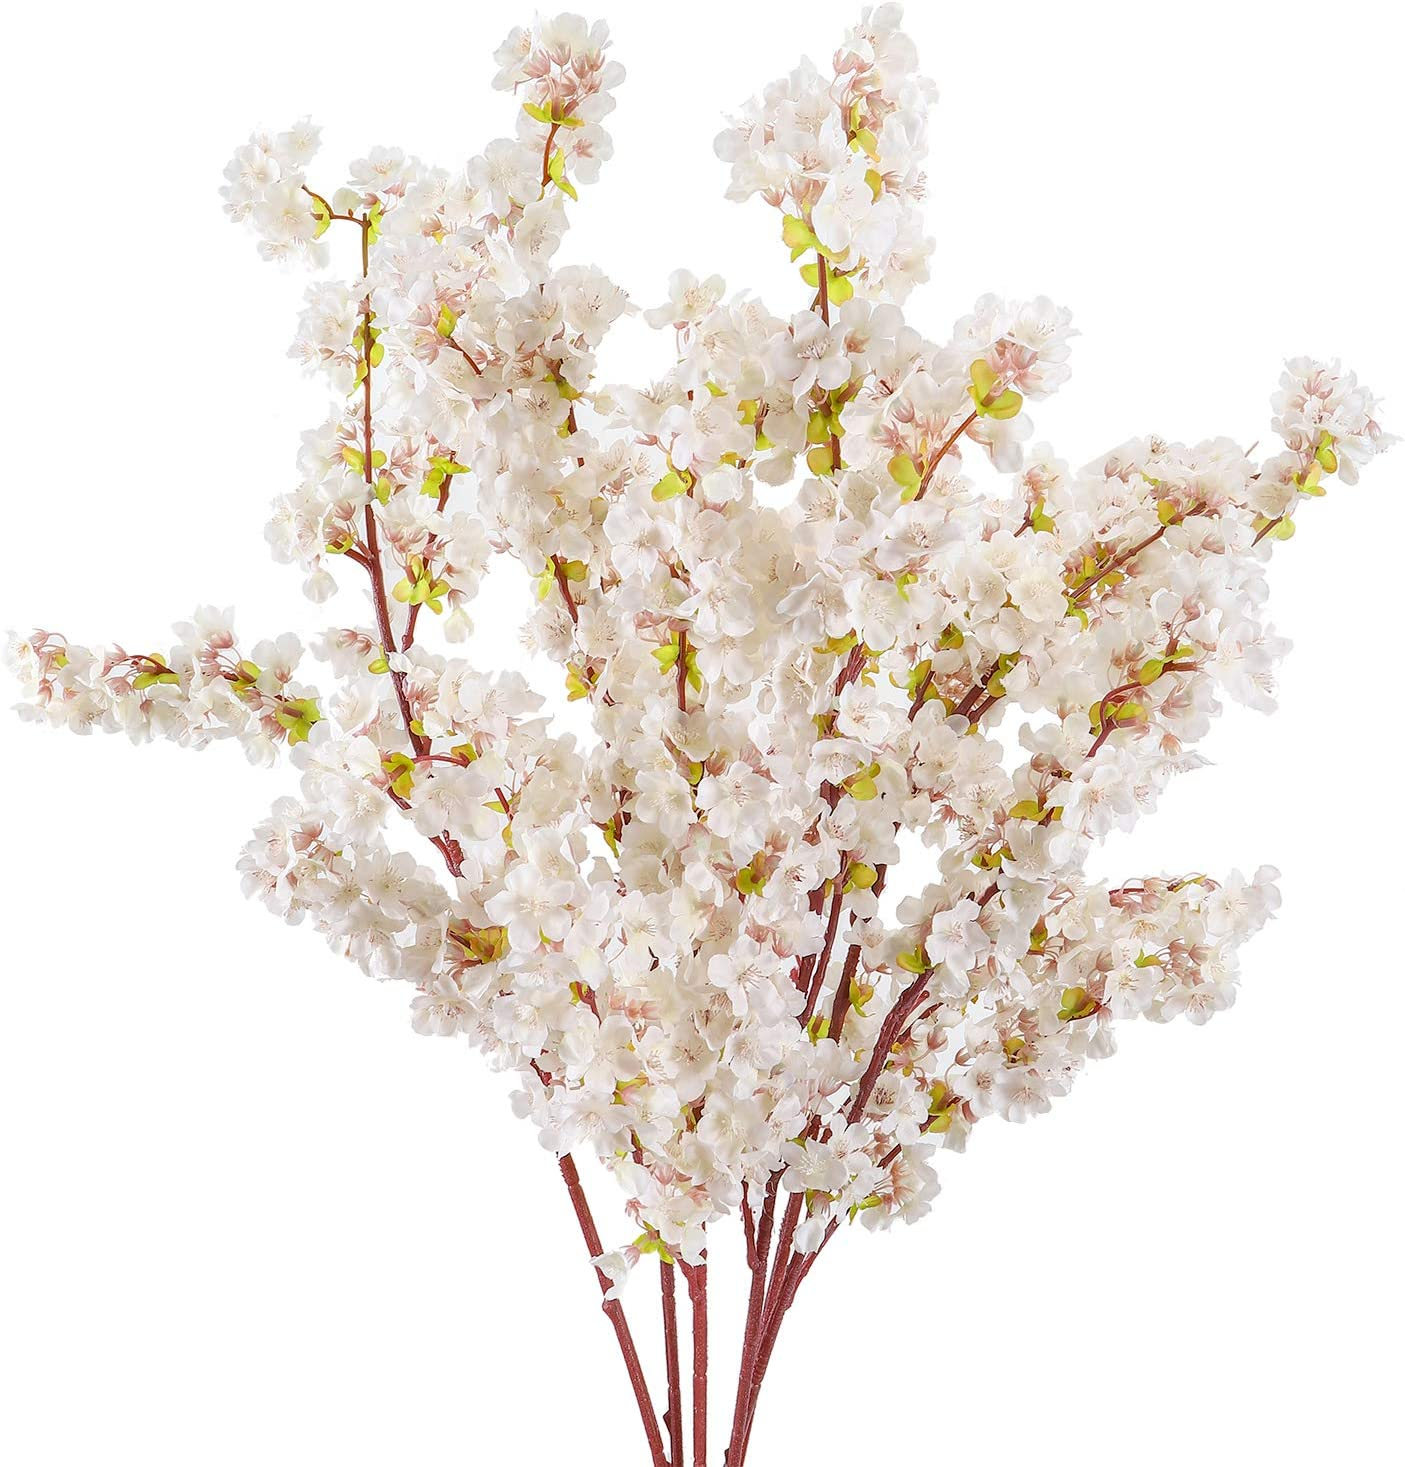 Cherry Blossom Flowers Artificial - 6 Packs Cherry Blossom Branches Long Stems Silk Tall Fake Flower Tree - Large Dogwood Blossoms Vases Arrangements For Home Decor, Wedding, Vase - 39 Inch Faux Stem